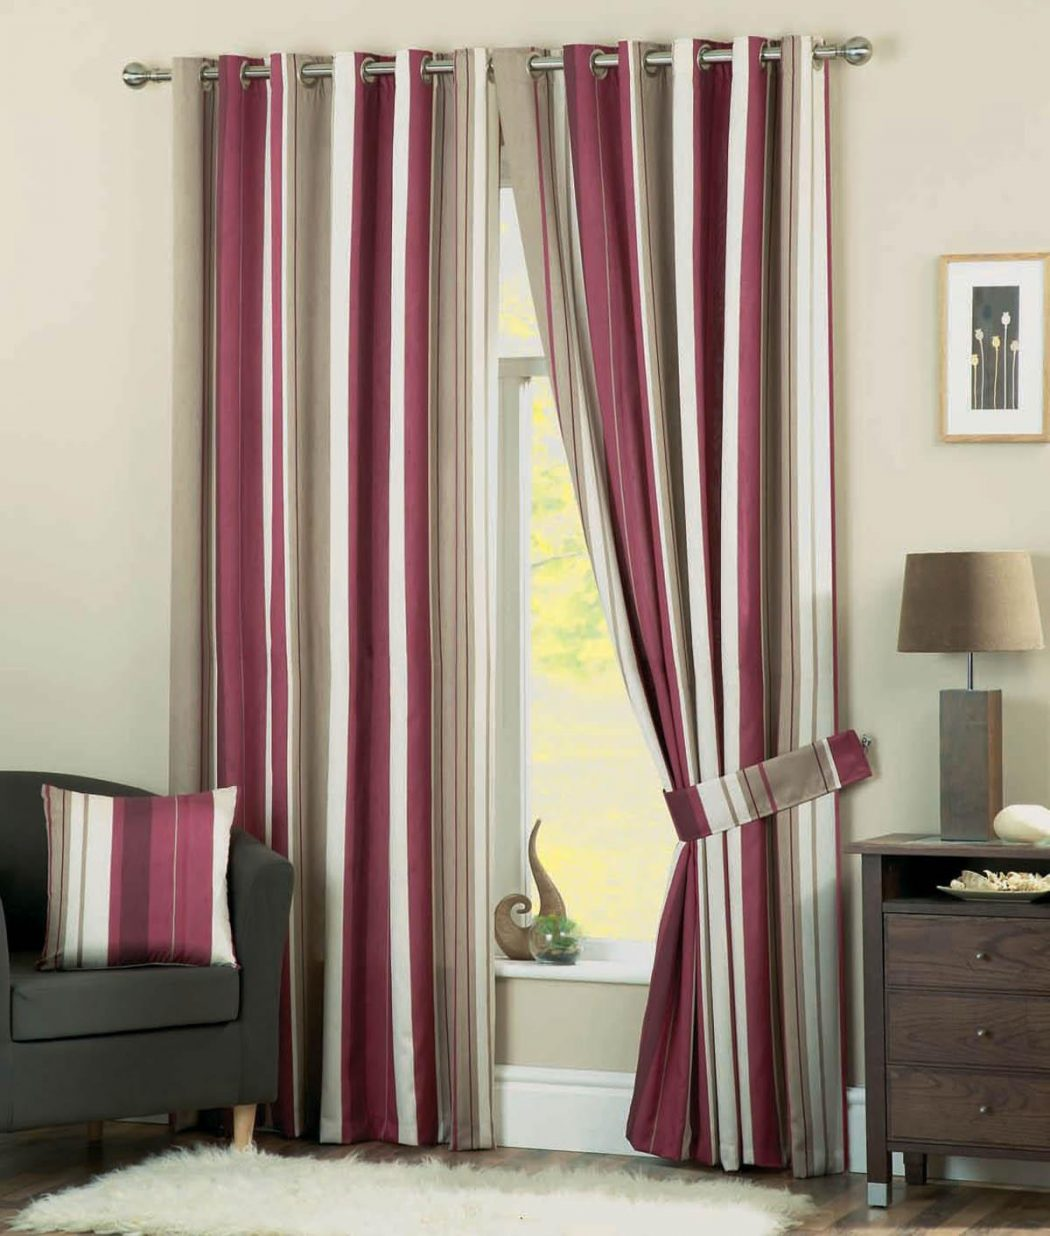 Whitworth-Claret 20+ Hottest Curtain Designs for 2019